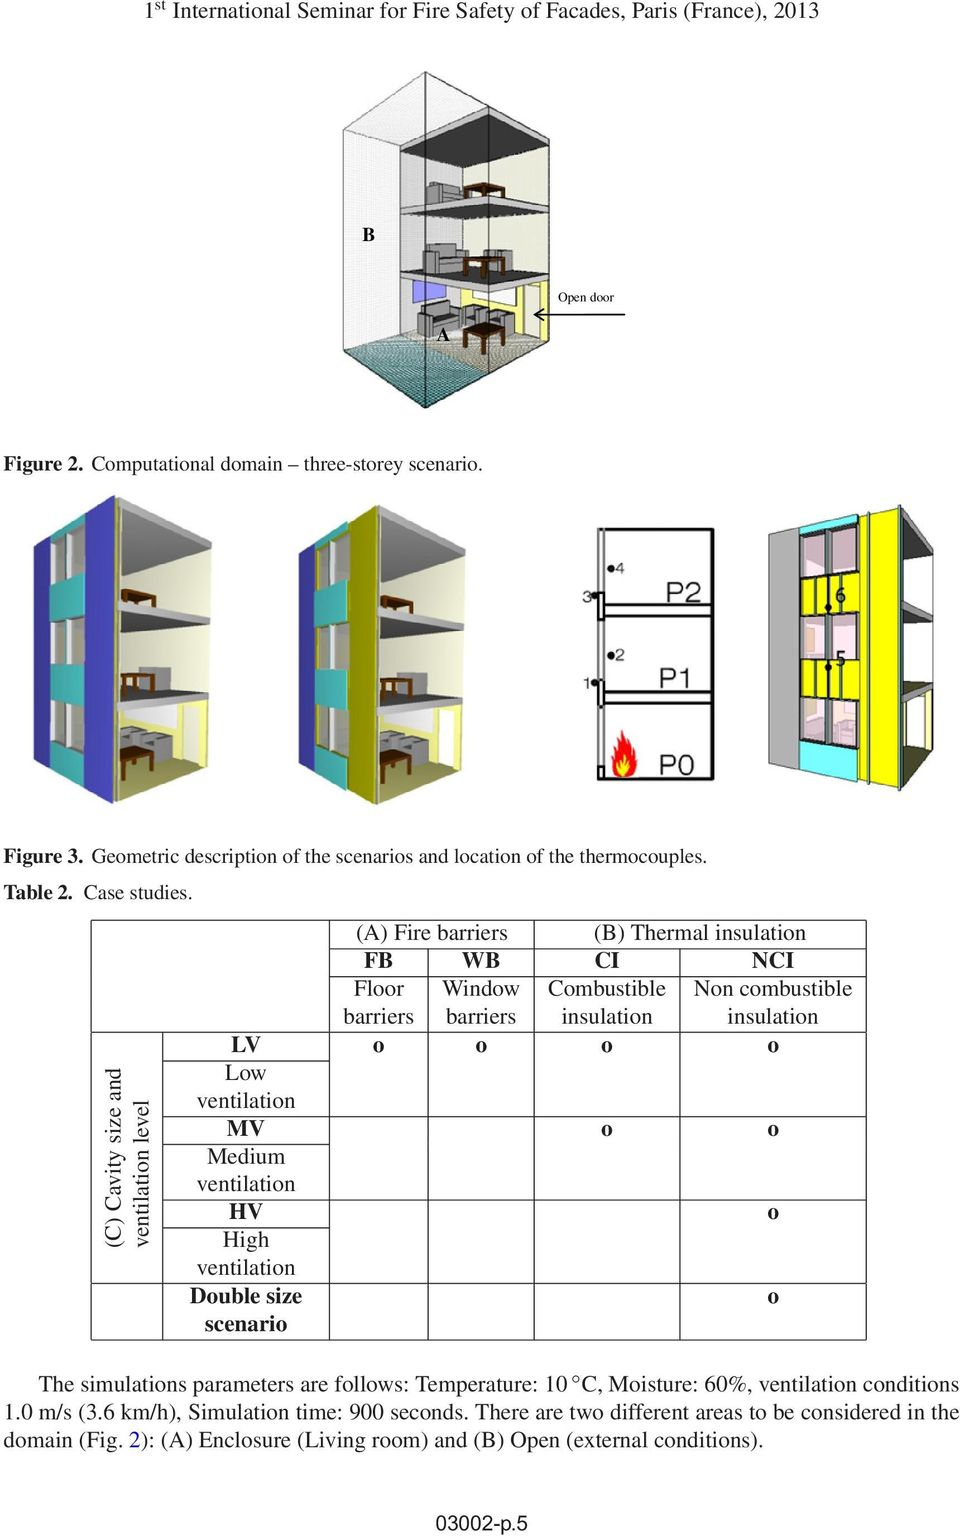 (C) Cavity size and ventilation level (A) Fire barriers (B) Thermal insulation FB WB CI NCI Floor Window Combustible Non combustible barriers barriers insulation insulation LV o o o o Low ventilation